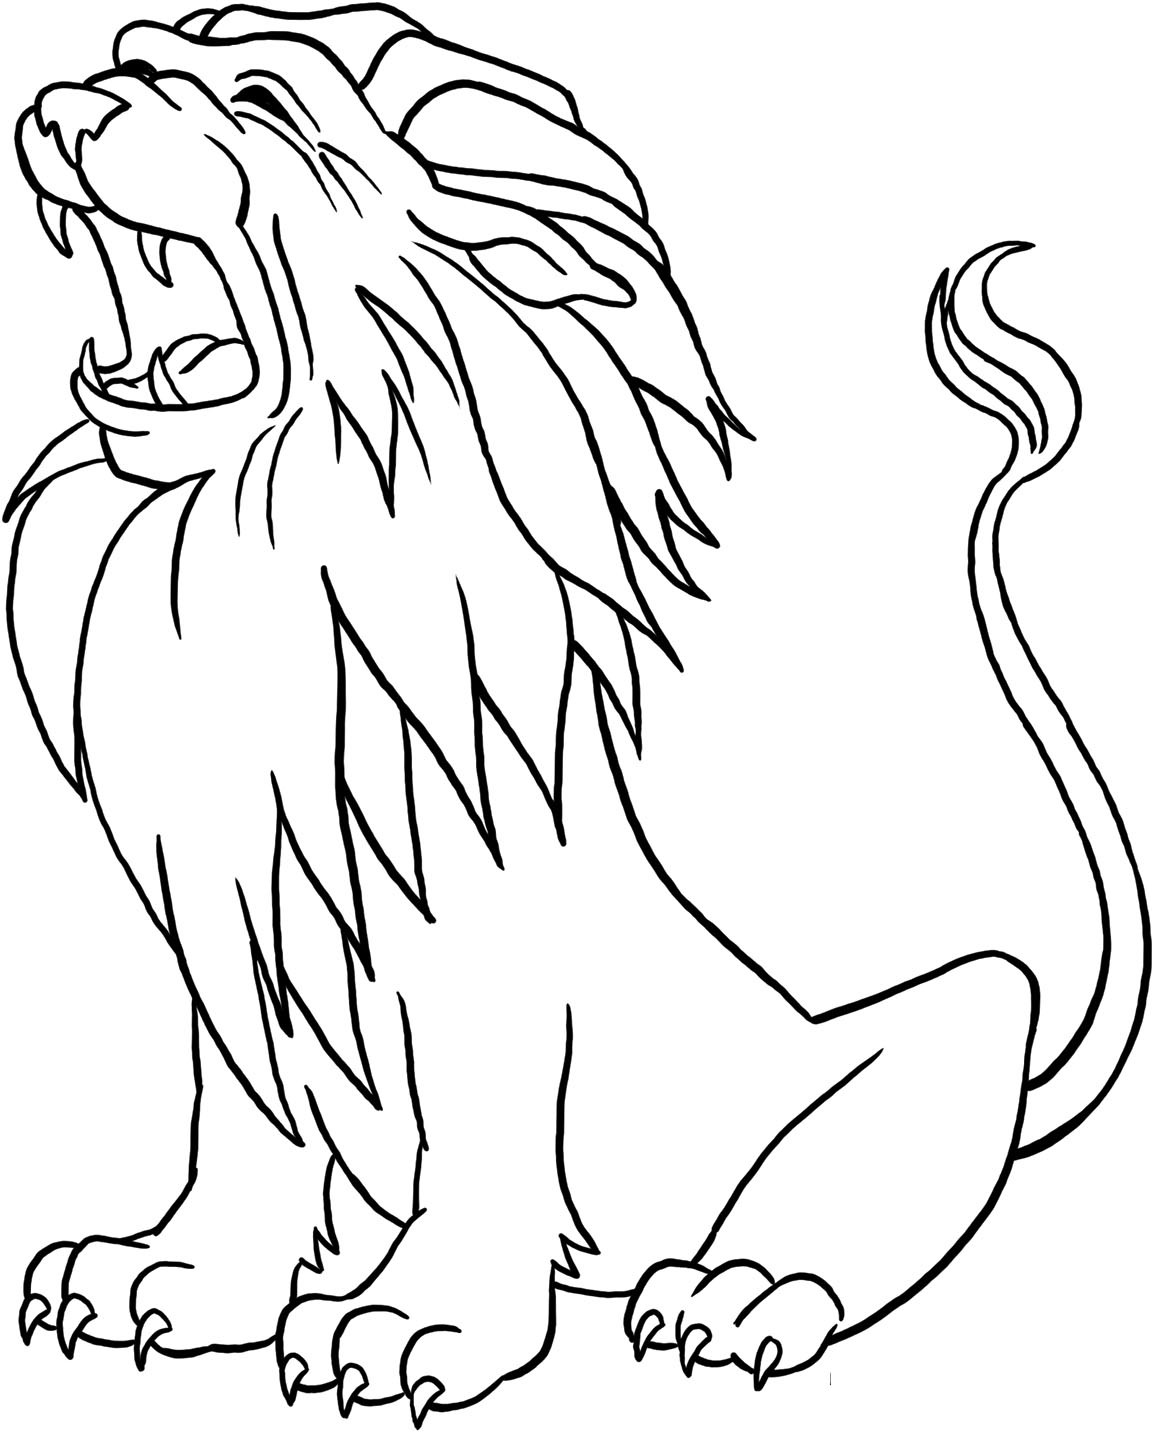 1158x1432 Mandala Lion Coloring Pages For Adults Endear Face Page Wagashiya